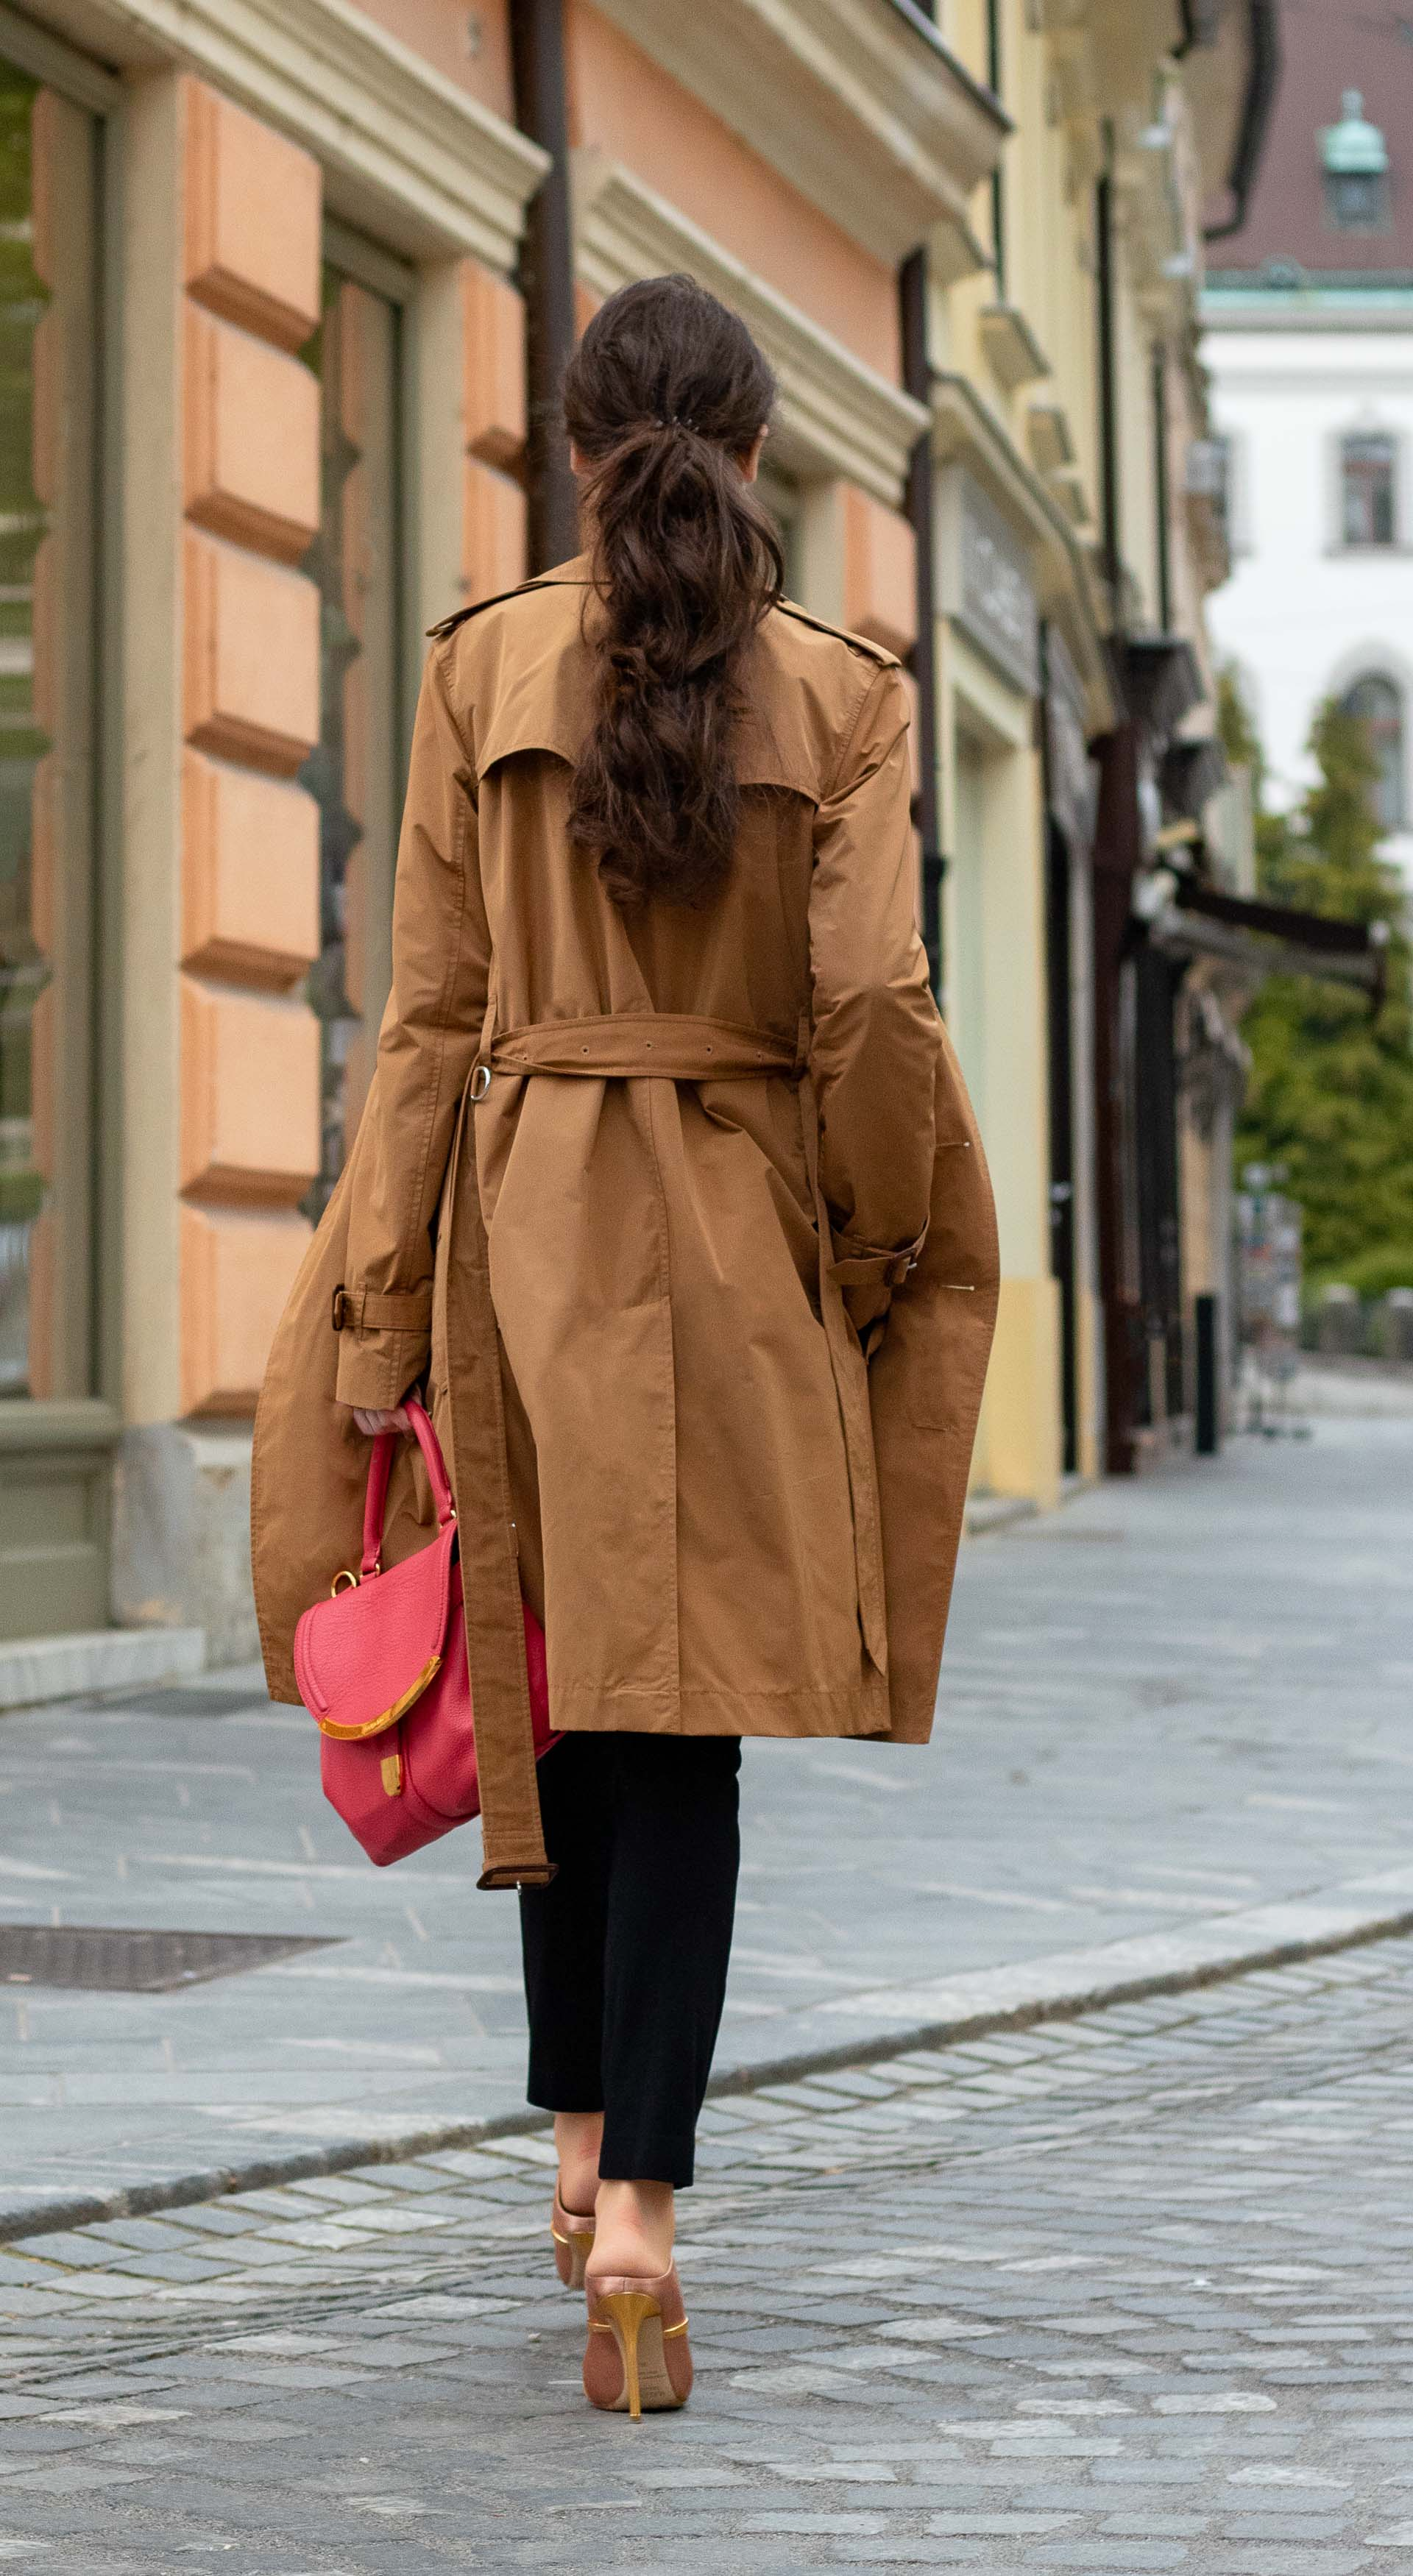 Must follow Slovenian Fashion Blogger Veronika Lipar of Brunette from Wall Street wearing camel Burberry trench coat black trousers blush Malone Souliers mules pink top handle bag low ponytail bangs going to the office